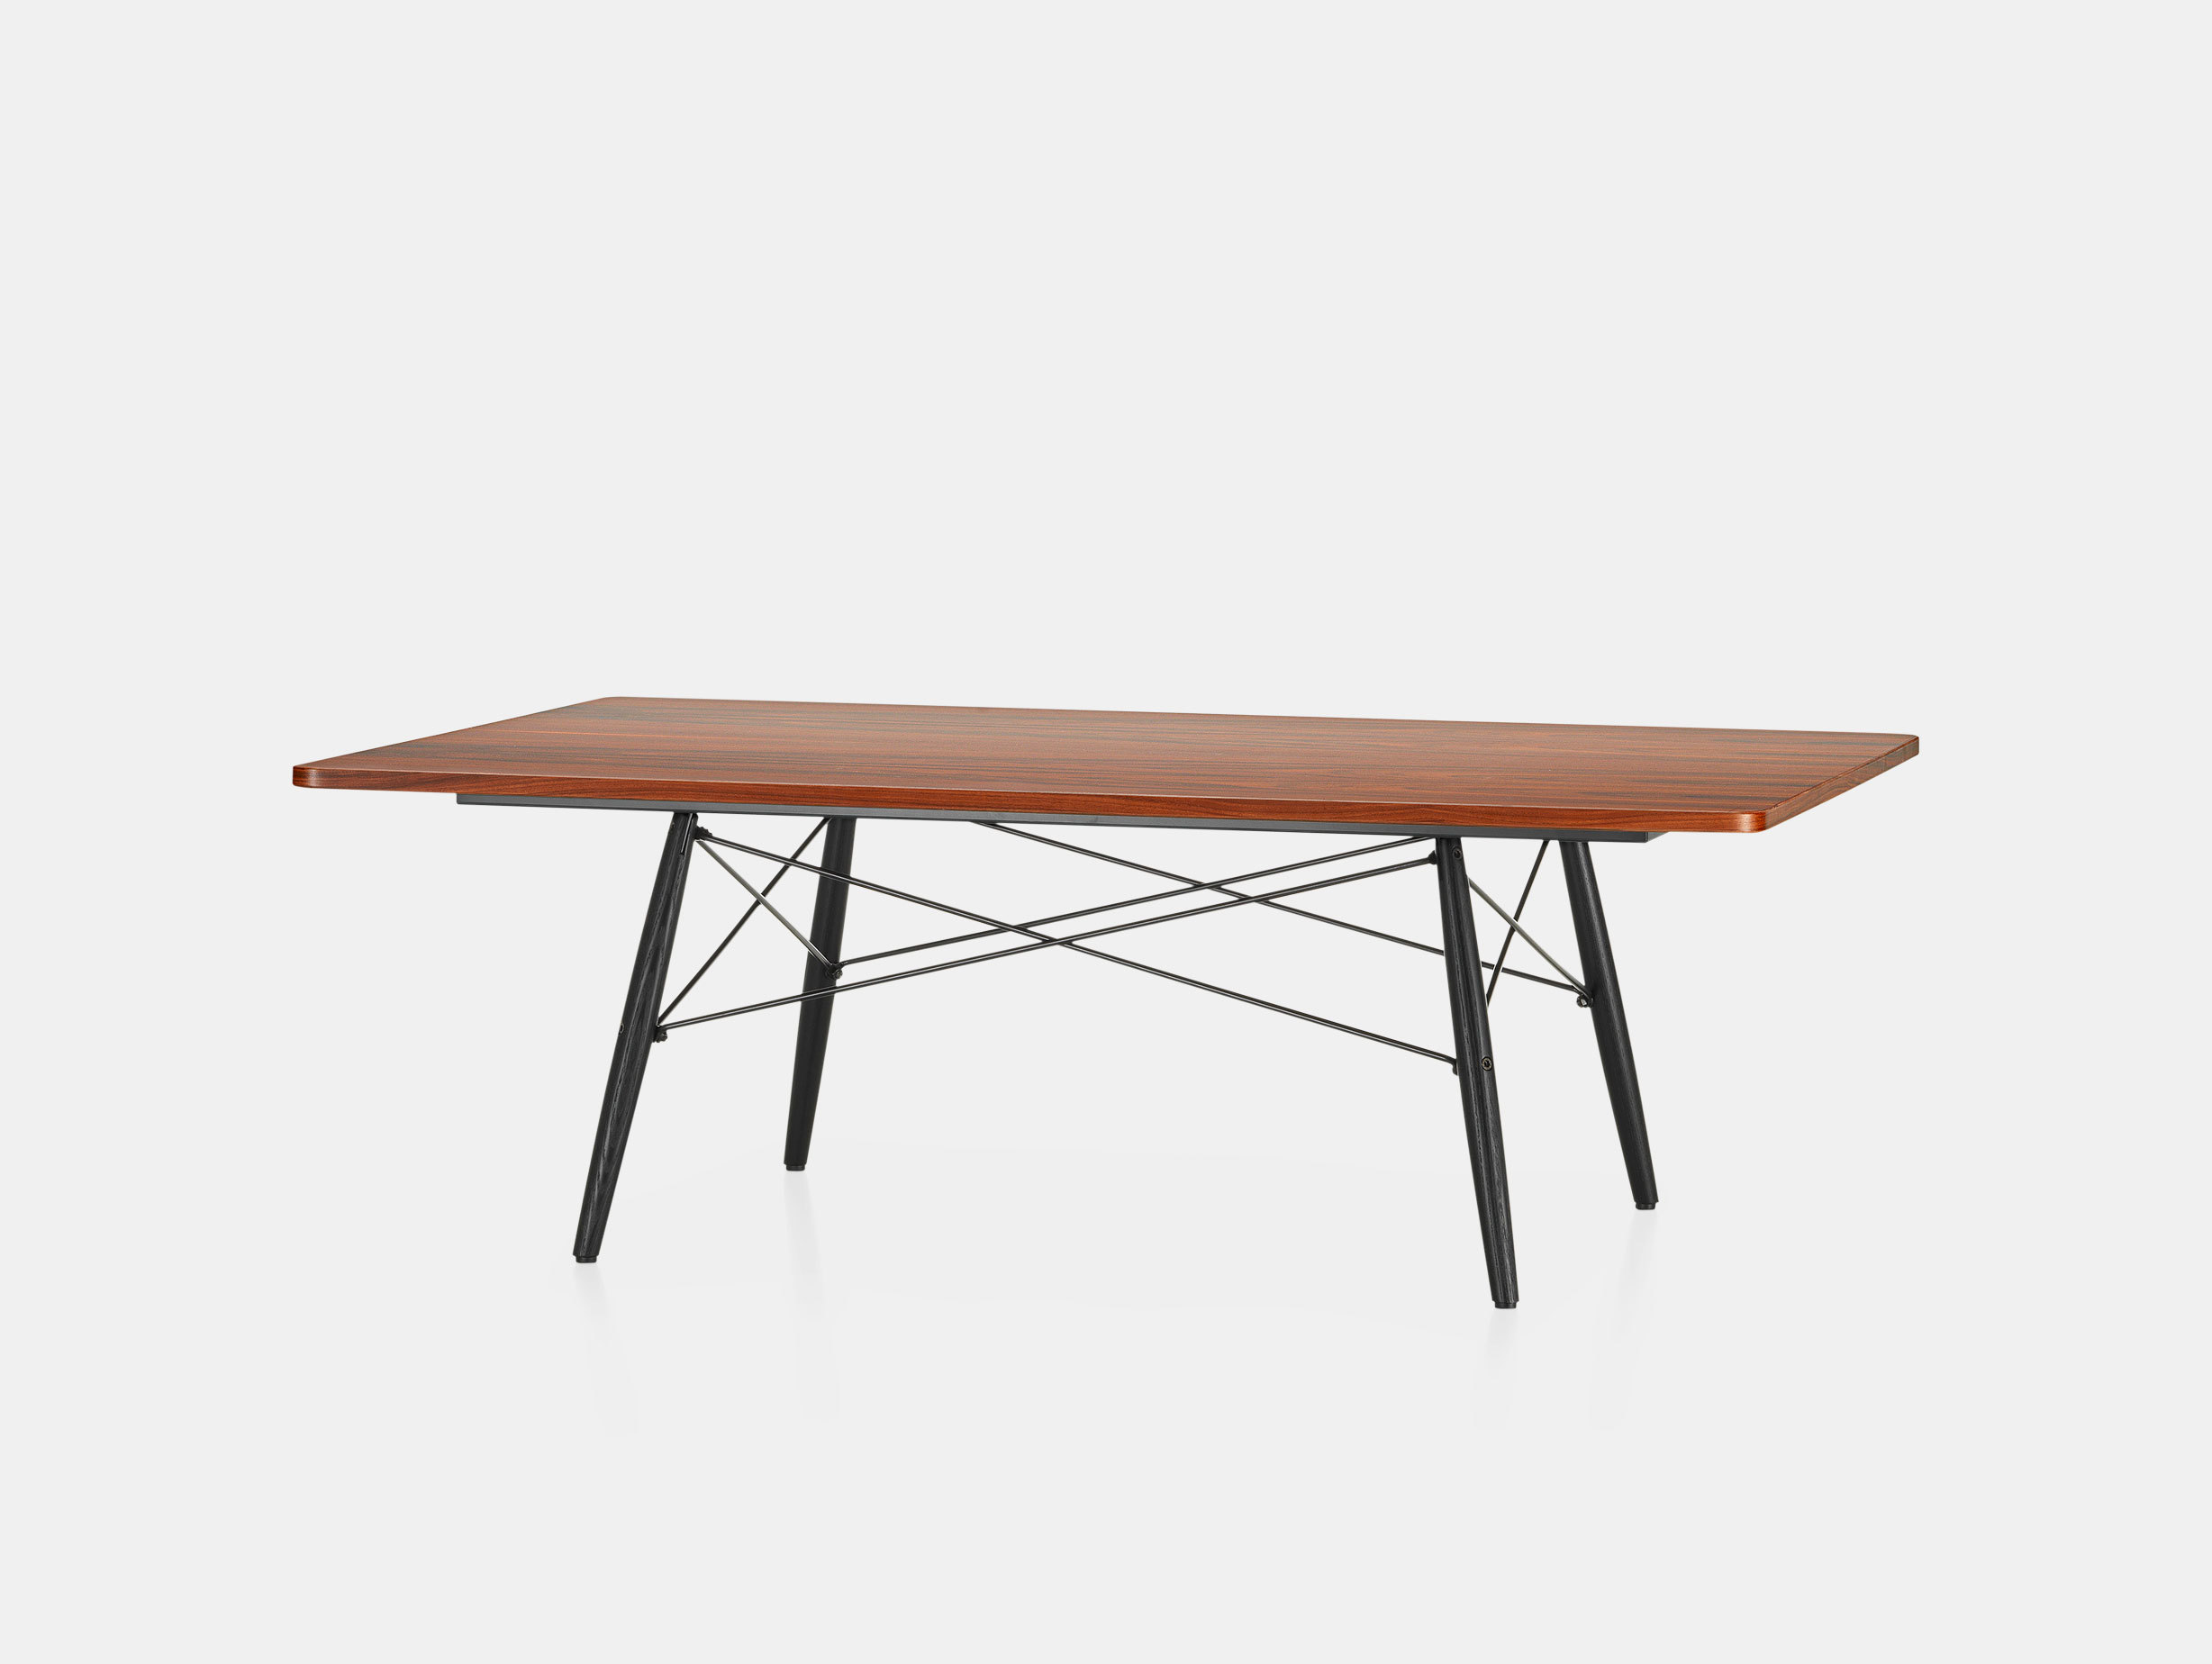 Eames Coffee Table image 2